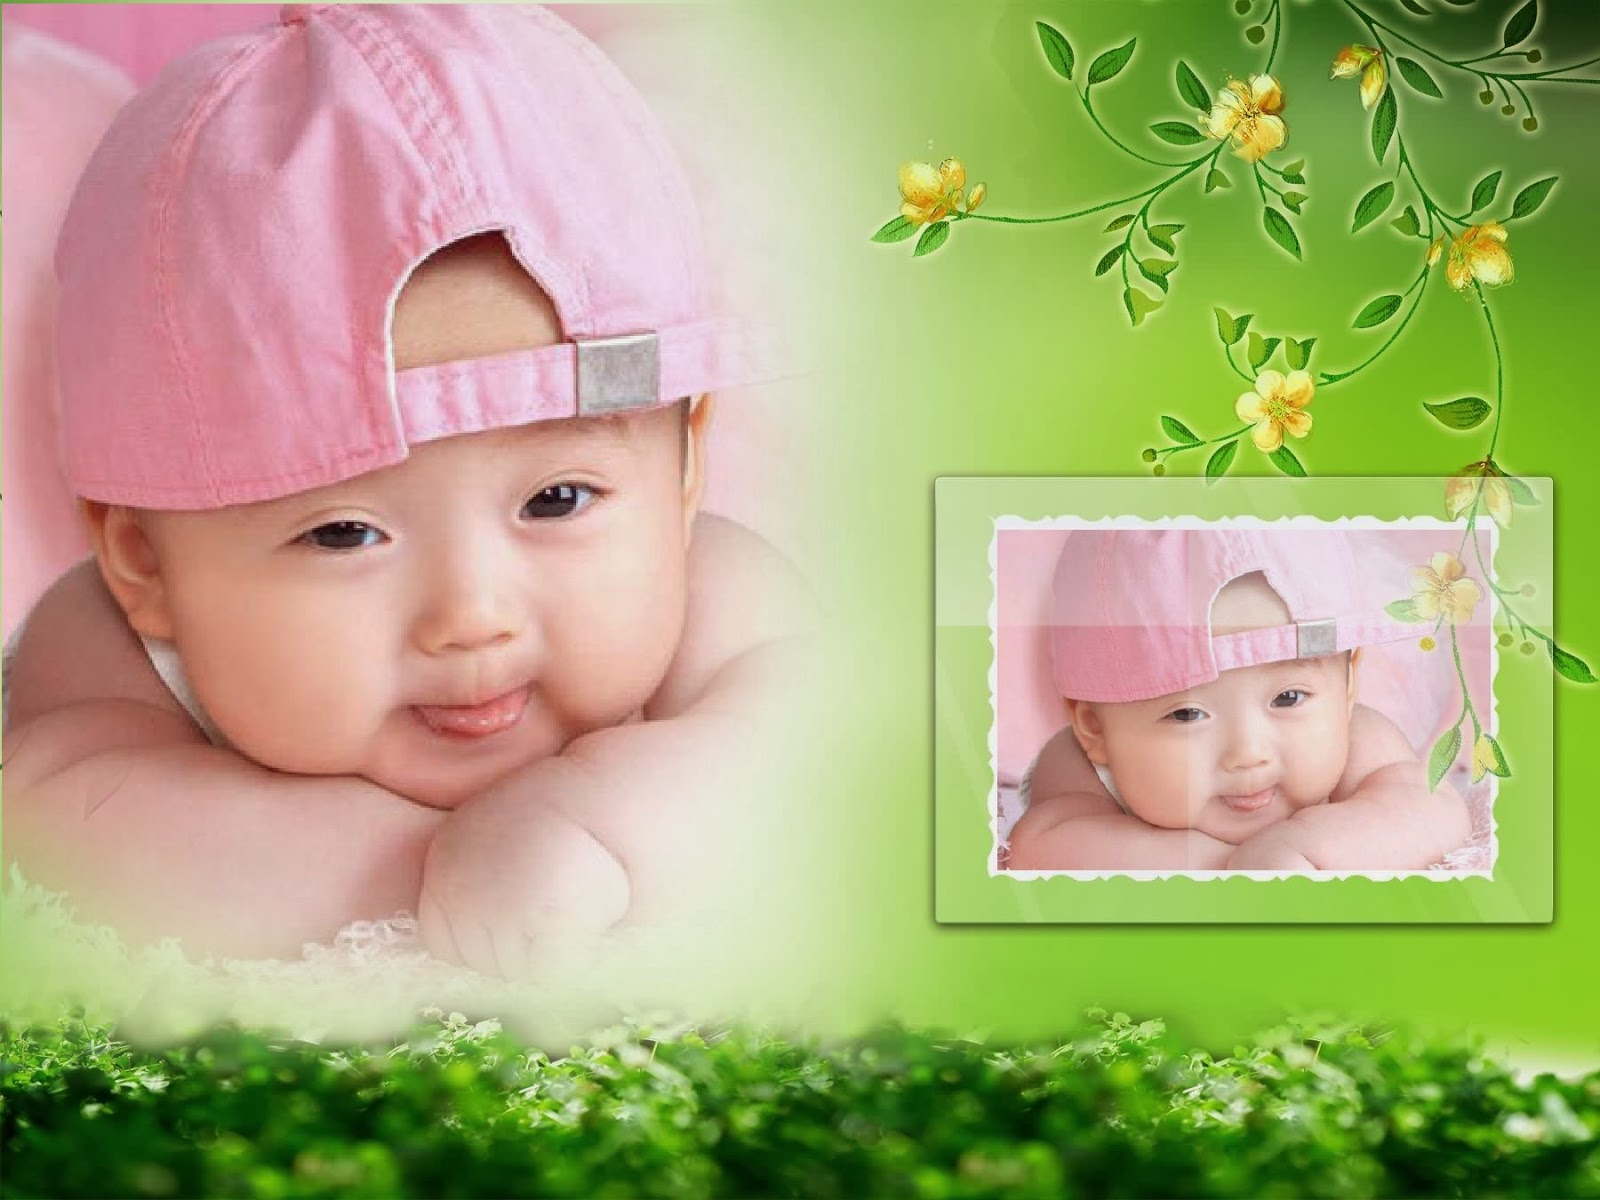 Cute Babies HD Wallpapers | Download Free High Definition ...